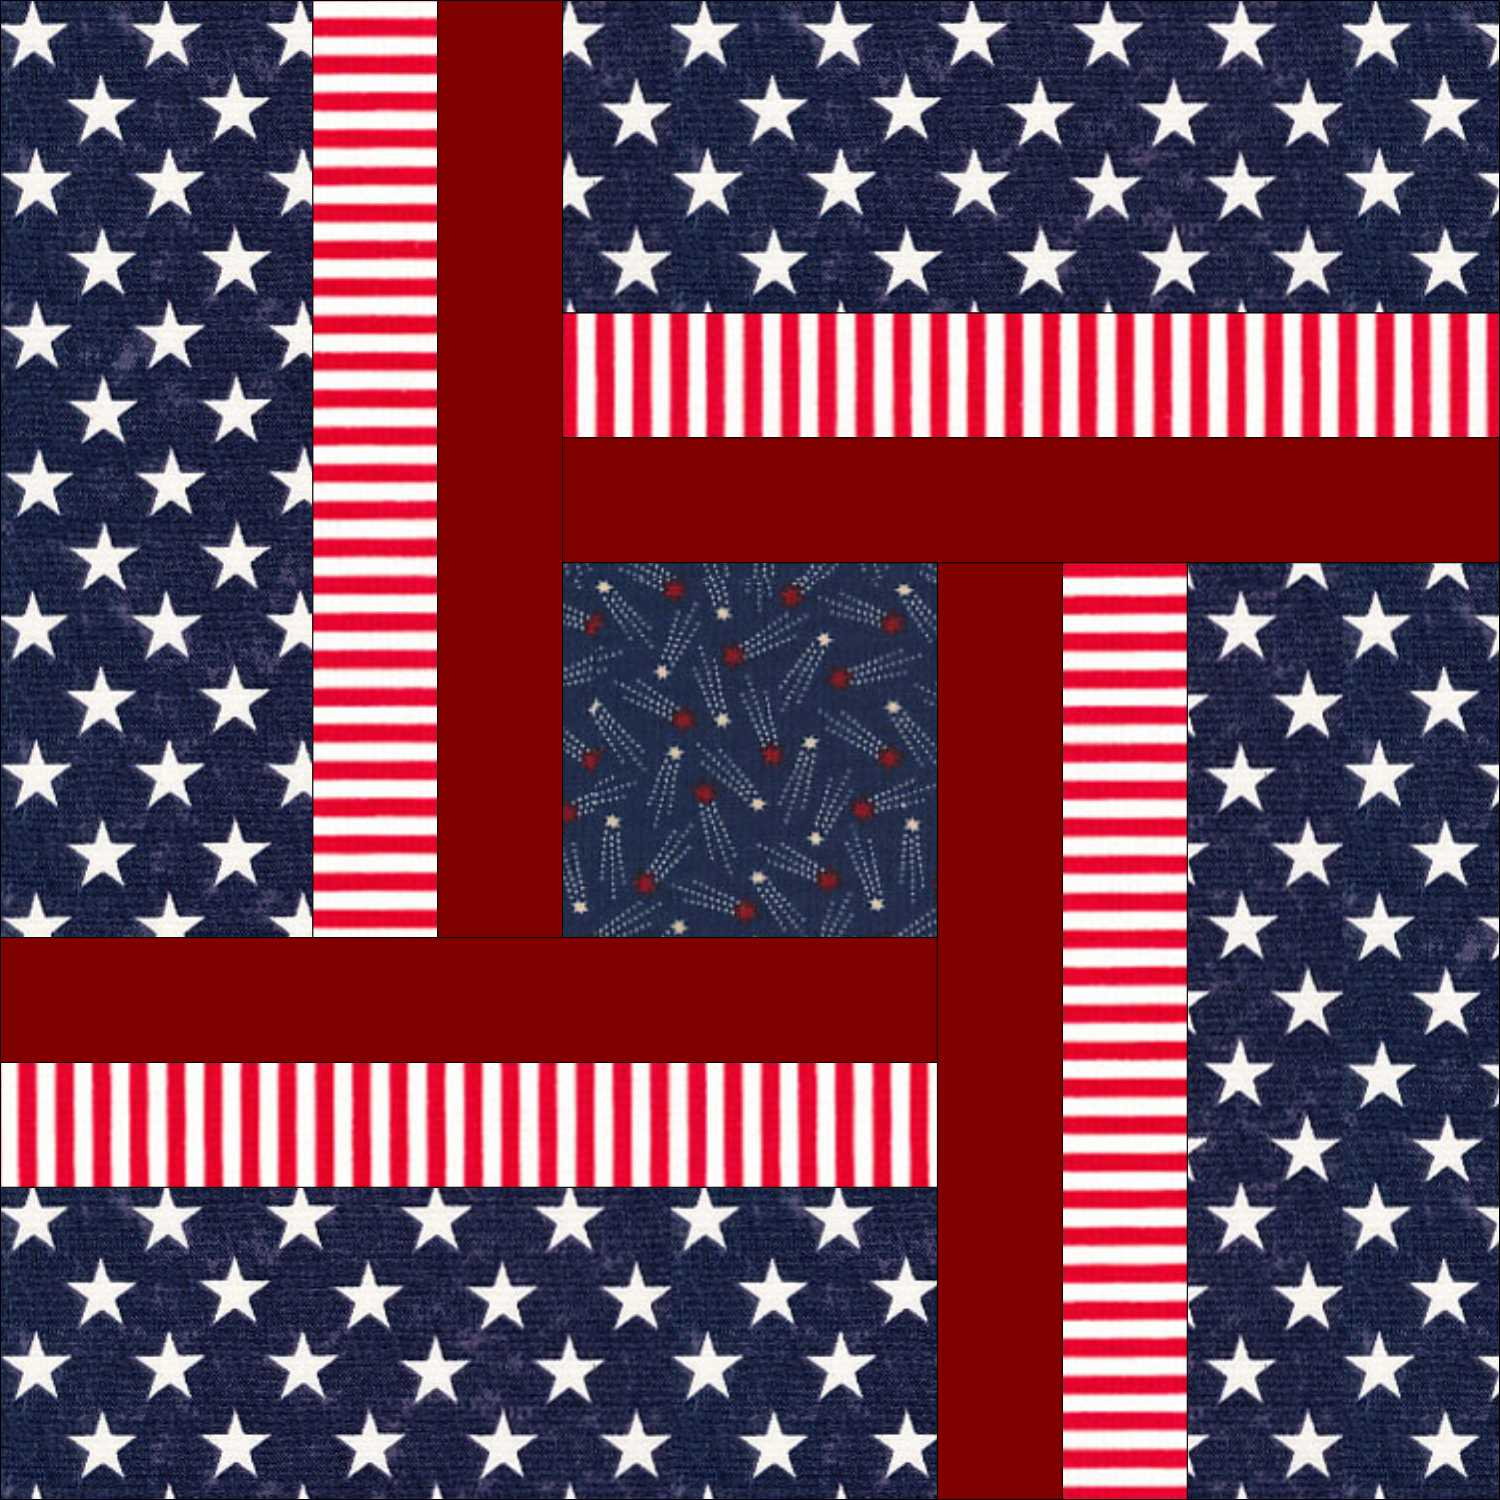 Patriotic Peppermint Twist 2.JPG